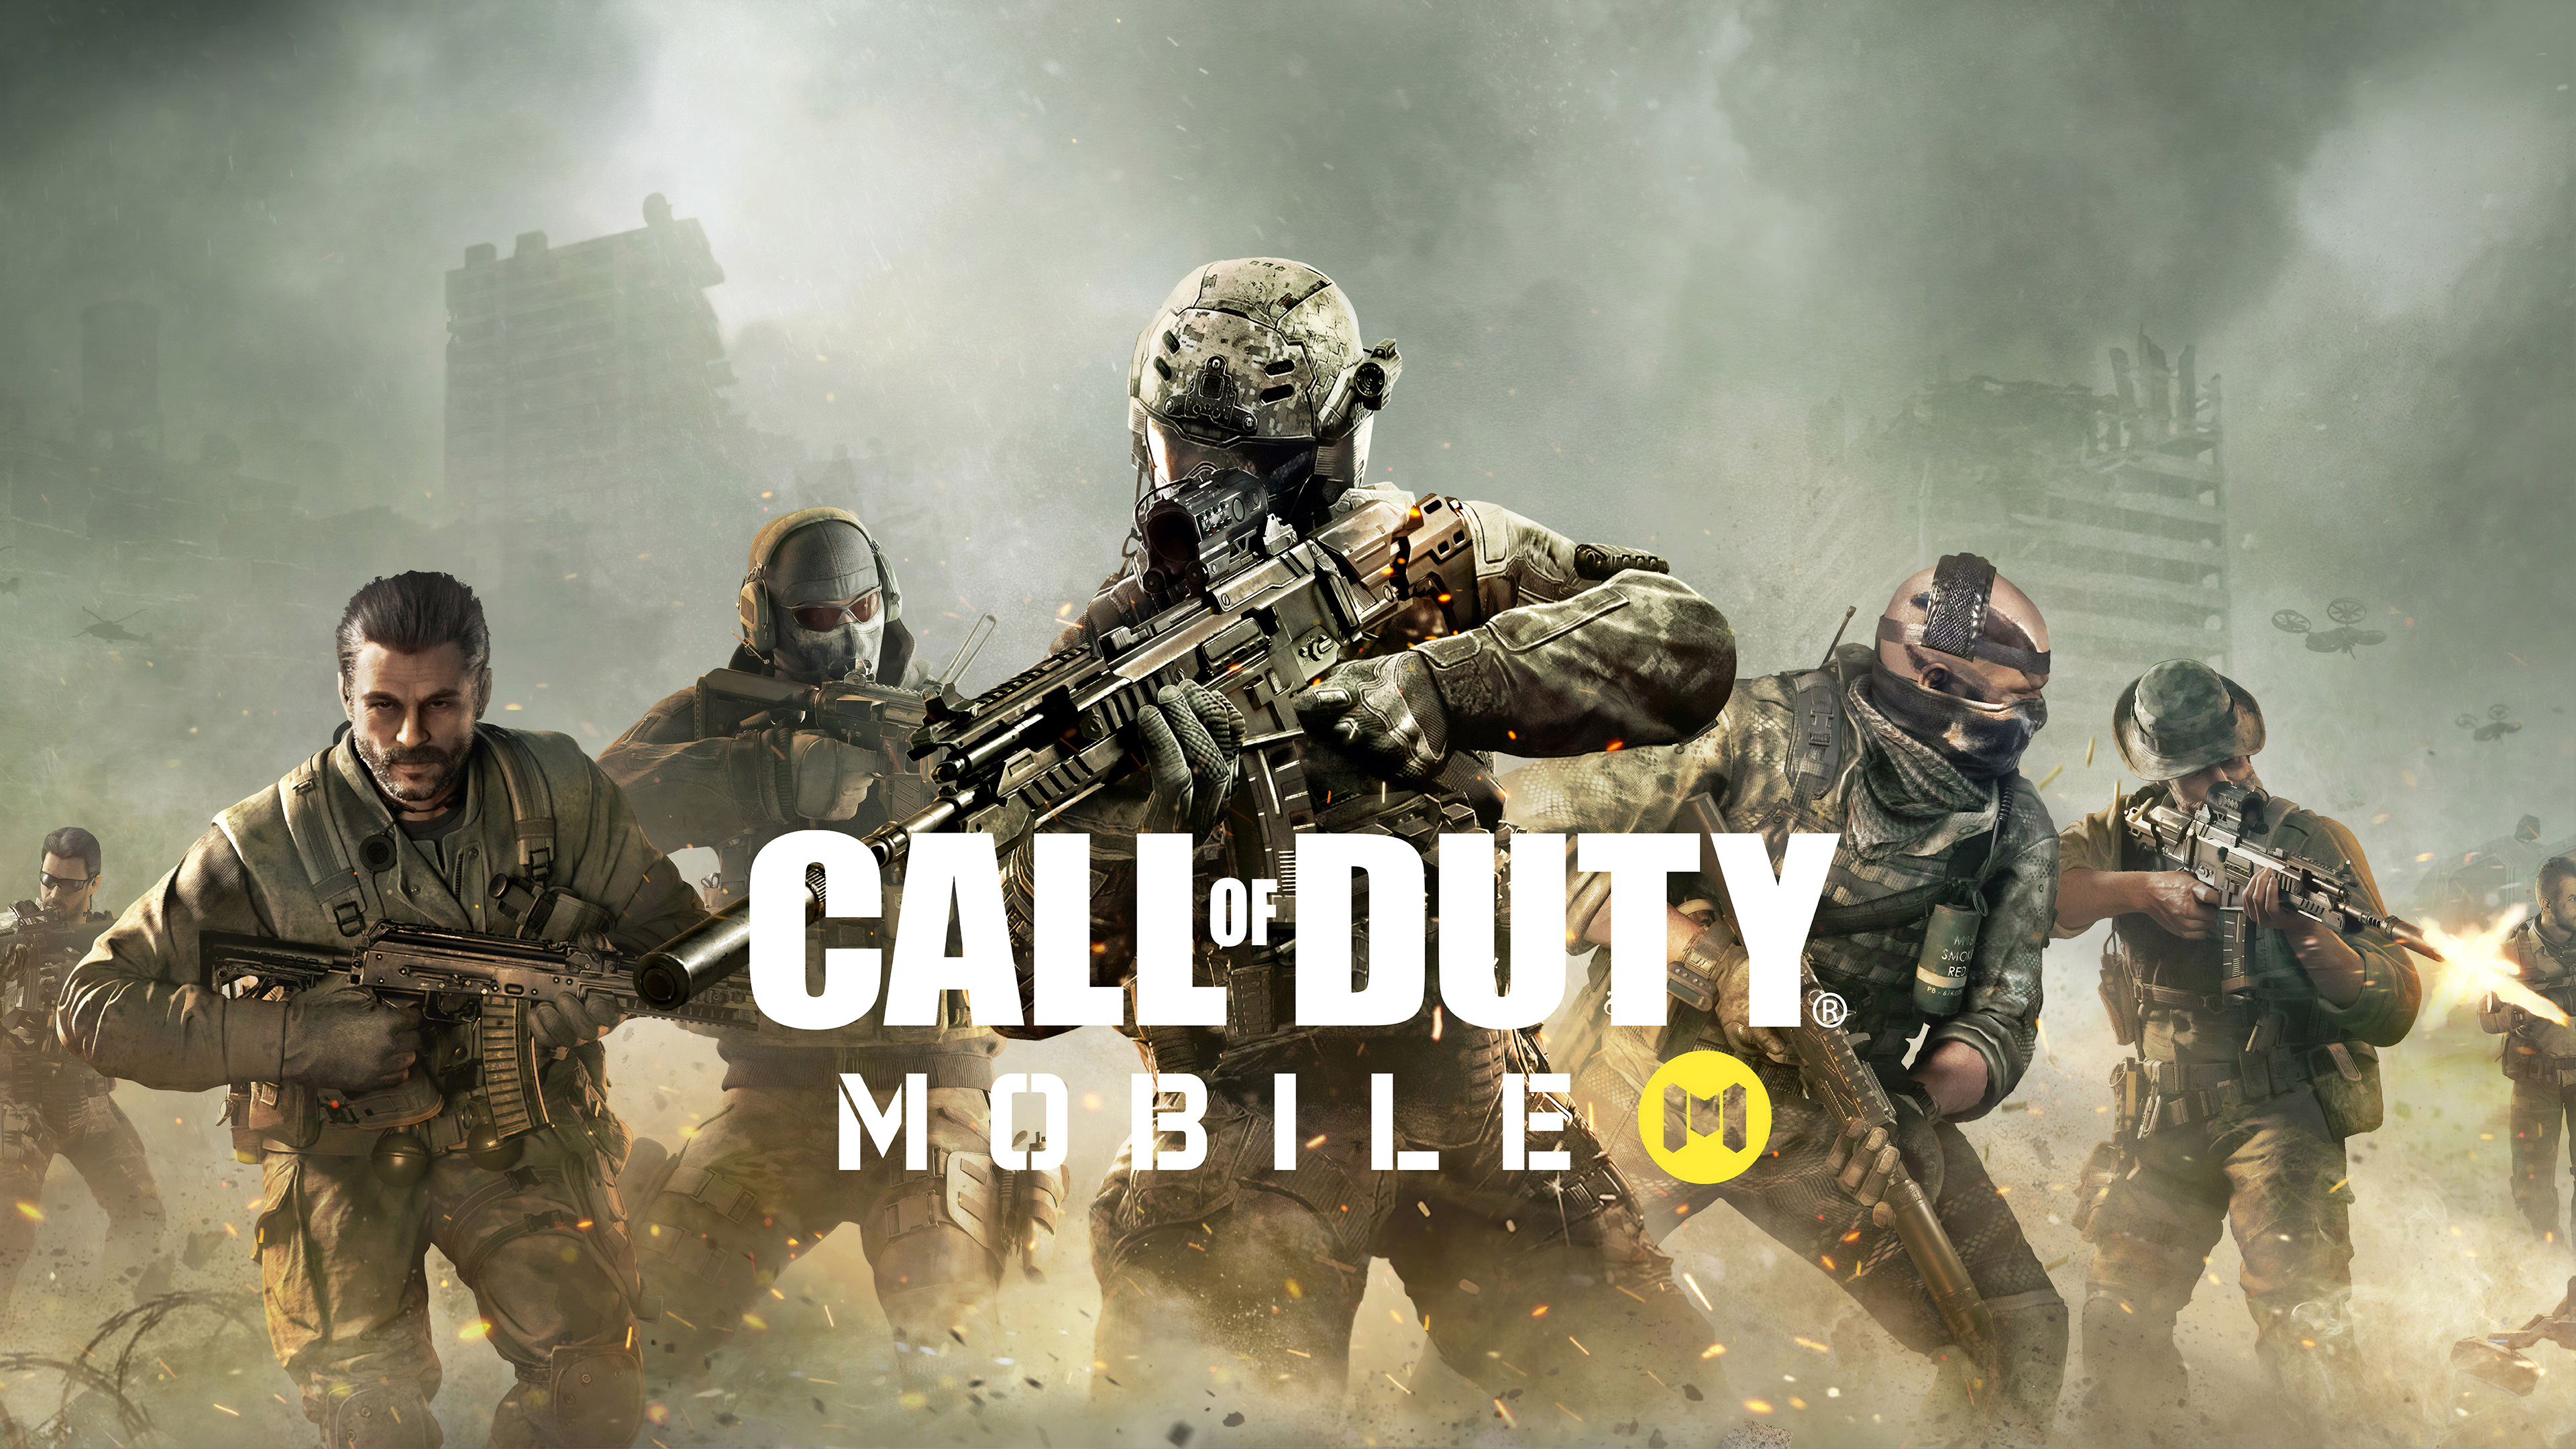 Poster of the computer game Call Of Duty Mobile 2019 for android 3840x2160